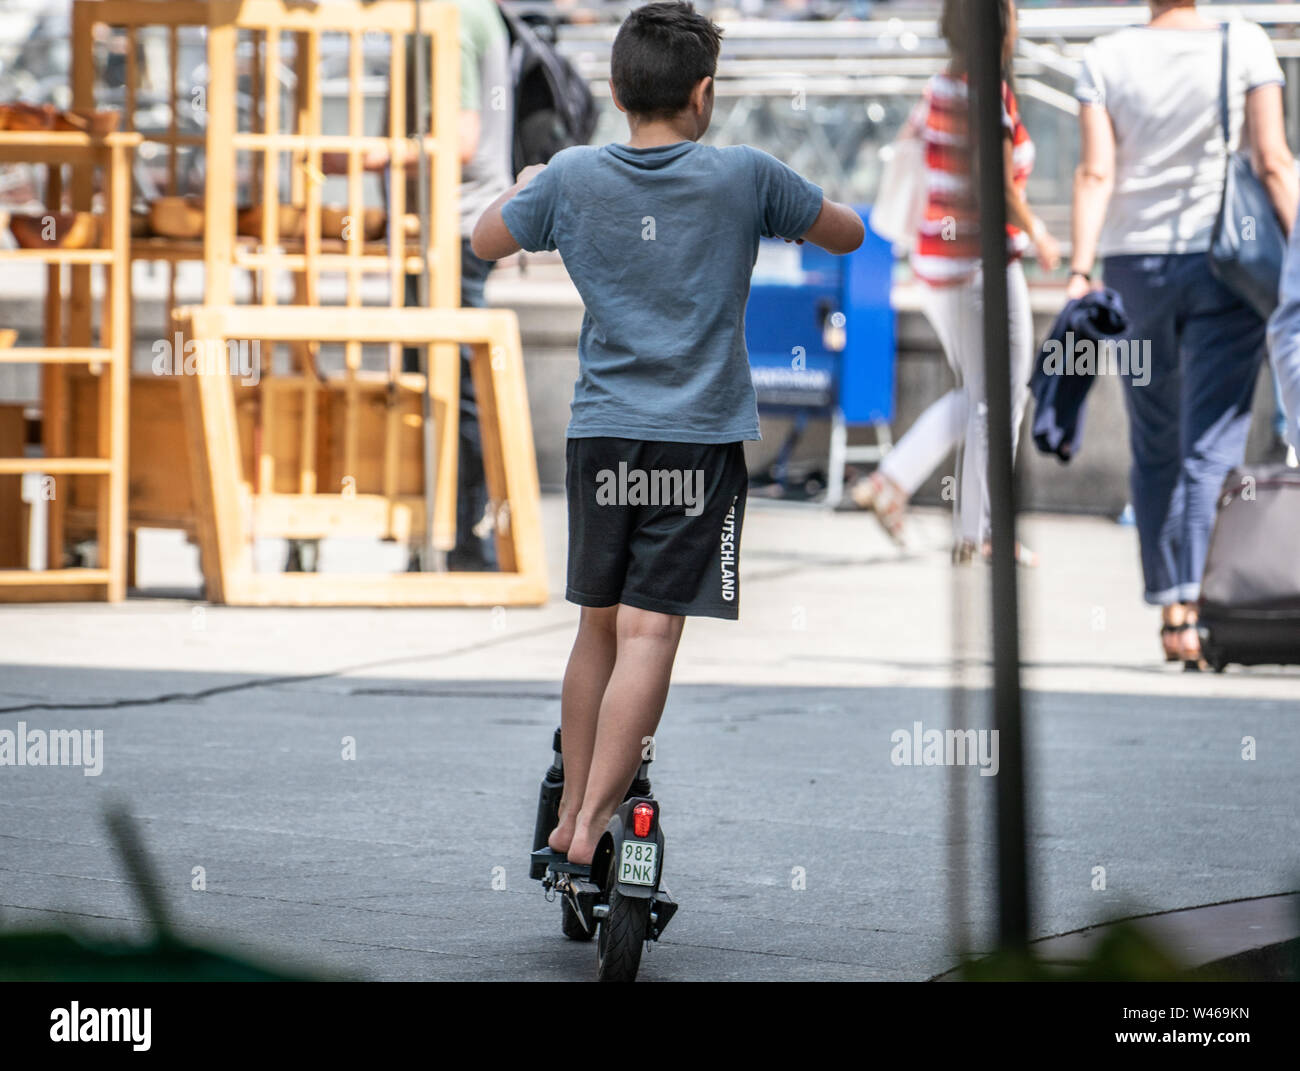 18 July 2019, Hessen, Frankfurt/Main: A little boy drives on a rented e-scooter through a busy pedestrian zone. Photo: Frank Rumpenhorst/dpa - Stock Image